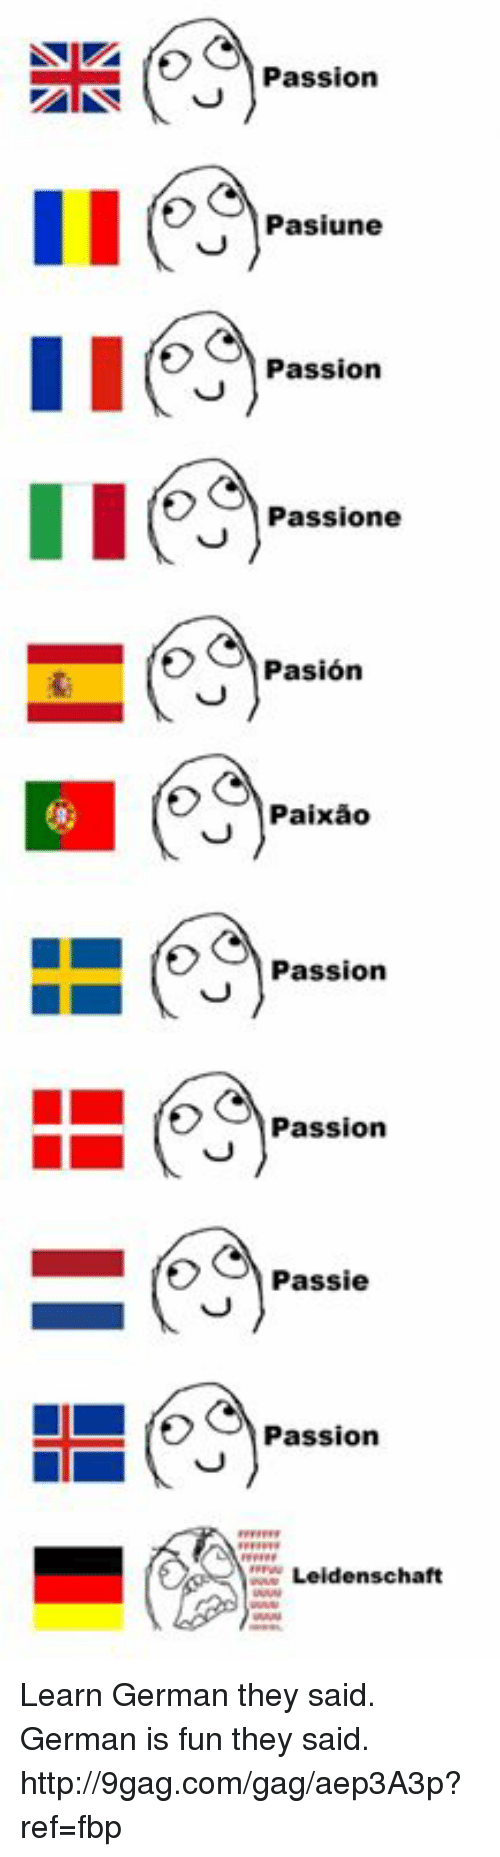 Dank, 🤖, and Fun: Passion  Pasiune  Passion  E Passione  Pasion  Paixao  L Passion  Passion  O C Passie  Passion  Leidenschaft Learn German they said. German is fun they said. http://9gag.com/gag/aep3A3p?ref=fbp